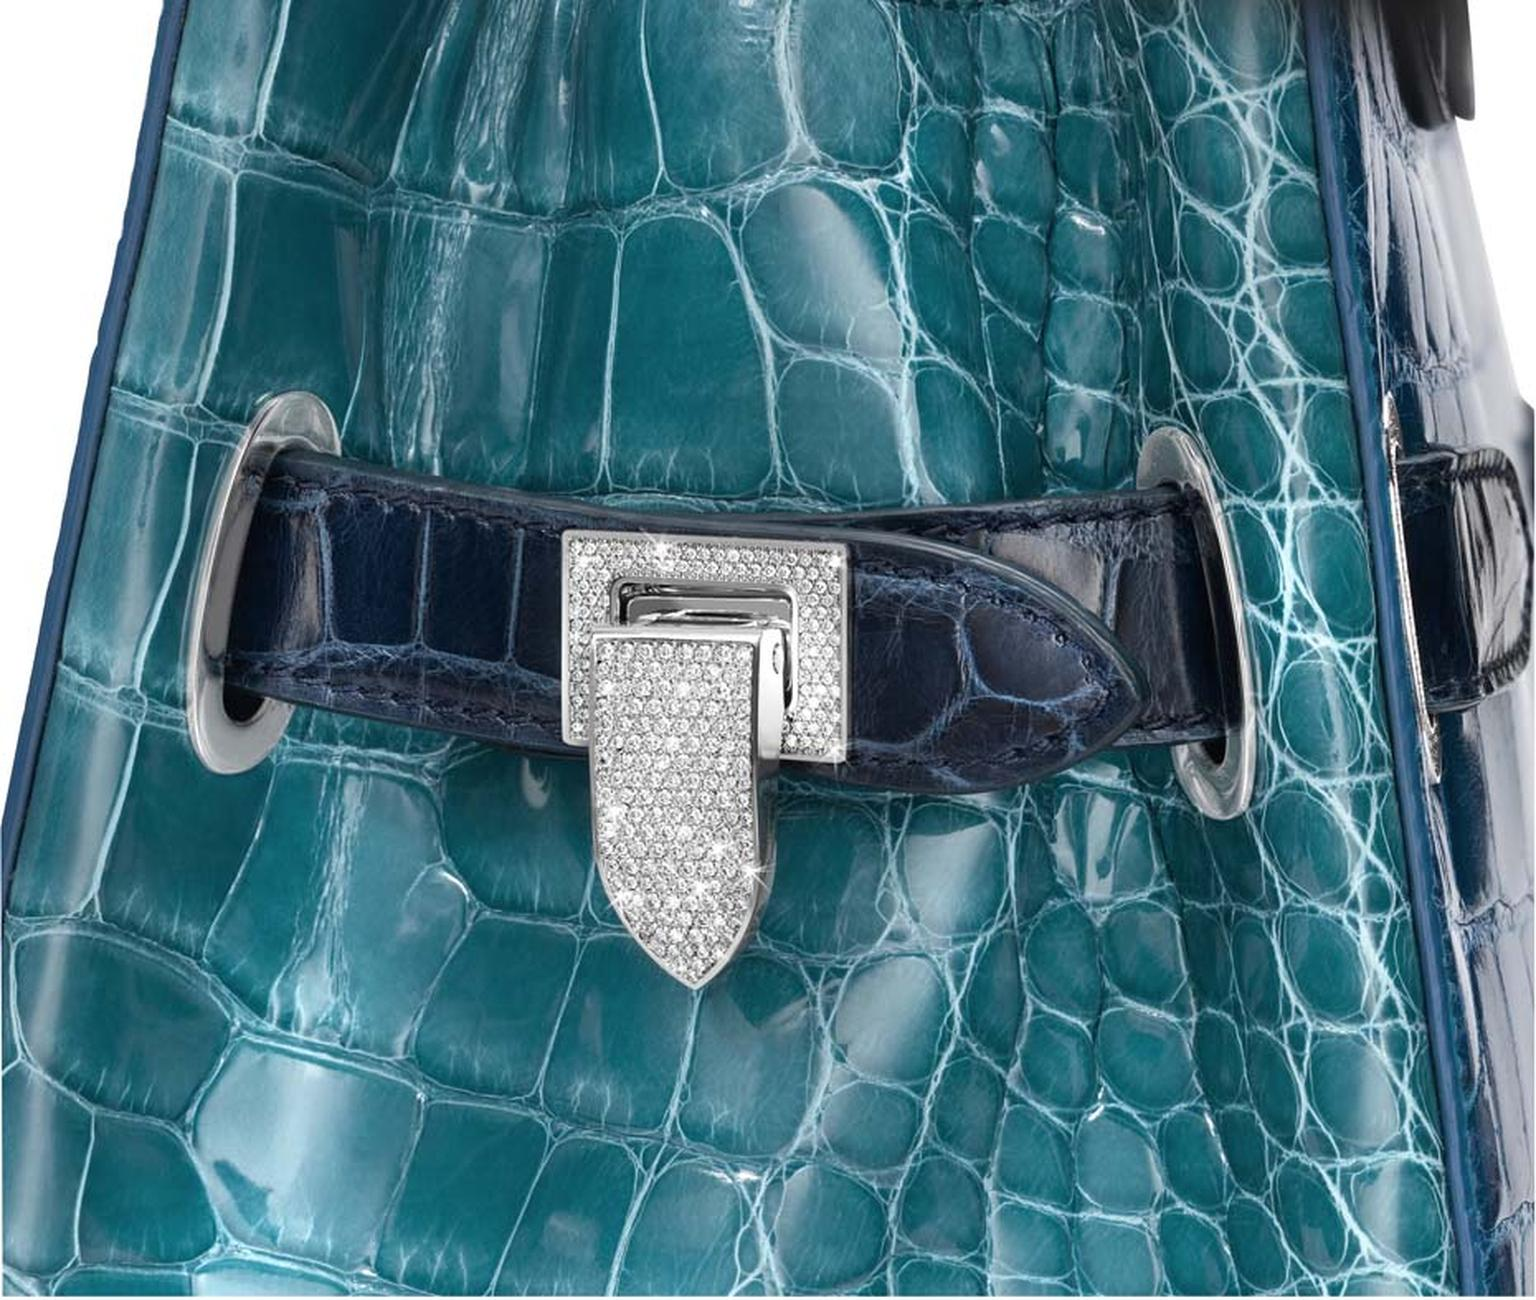 Asprey's 2013 jewel encrusted handbag.